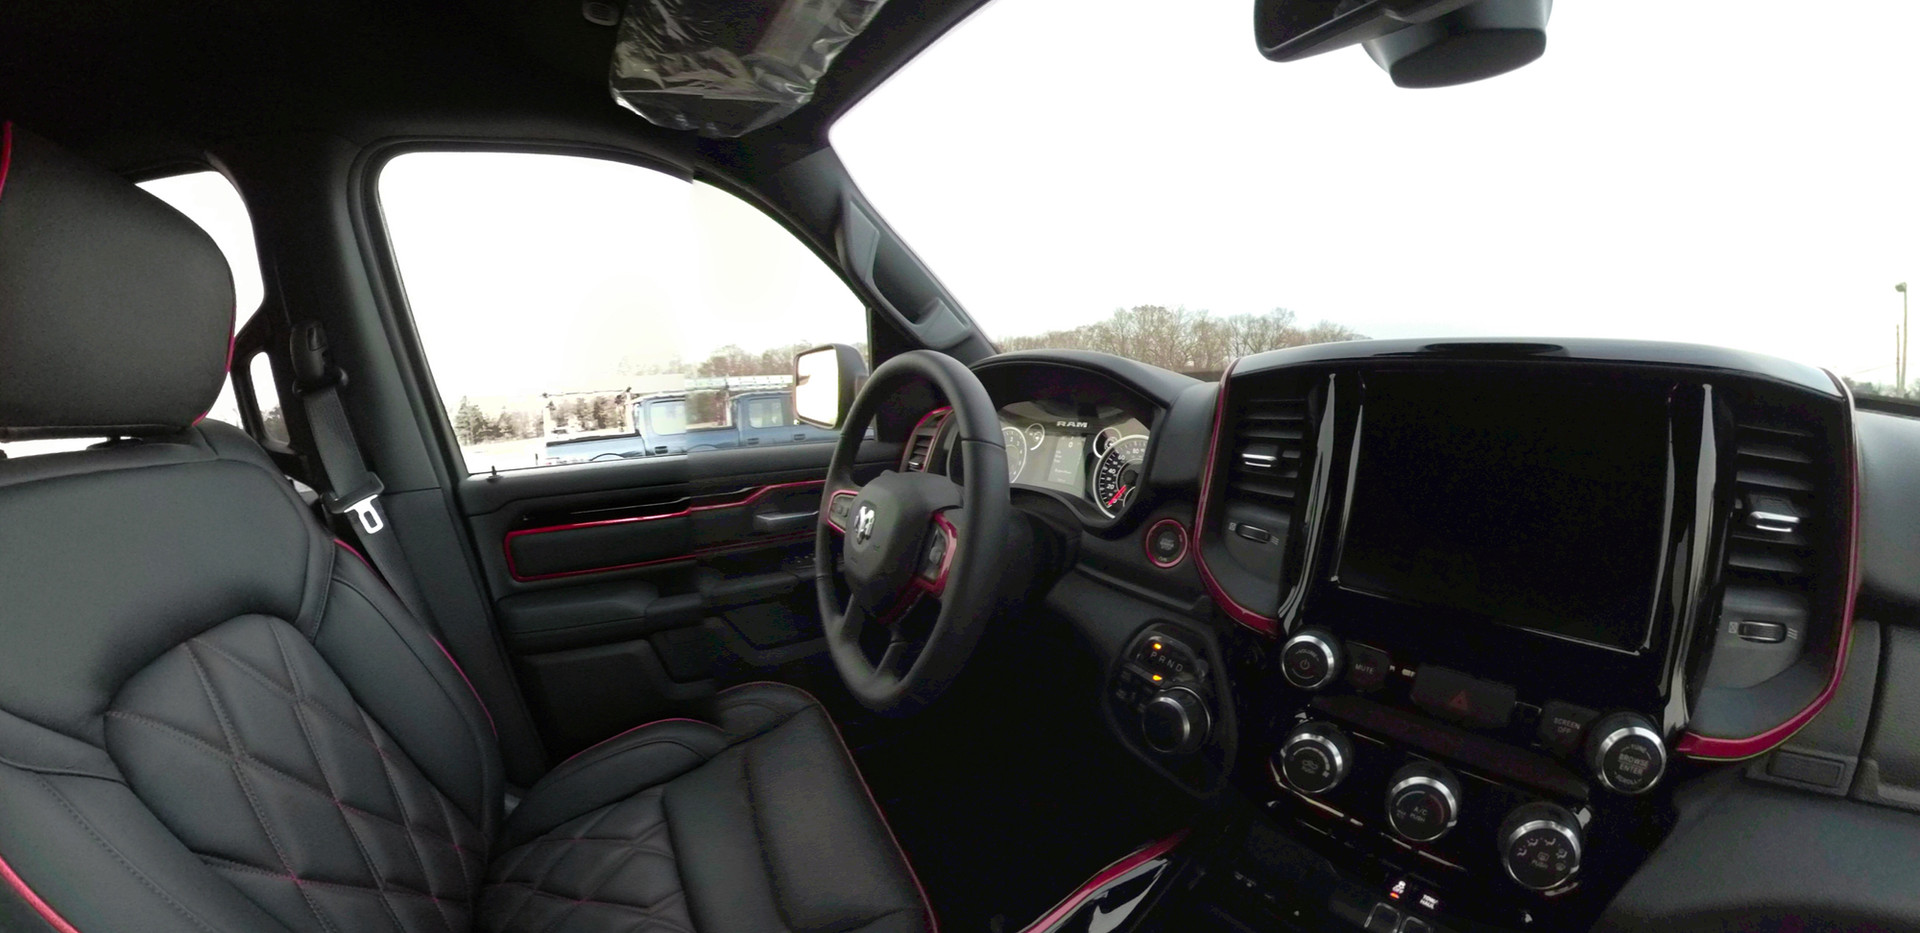 Black with Red Accents Jeep Interior